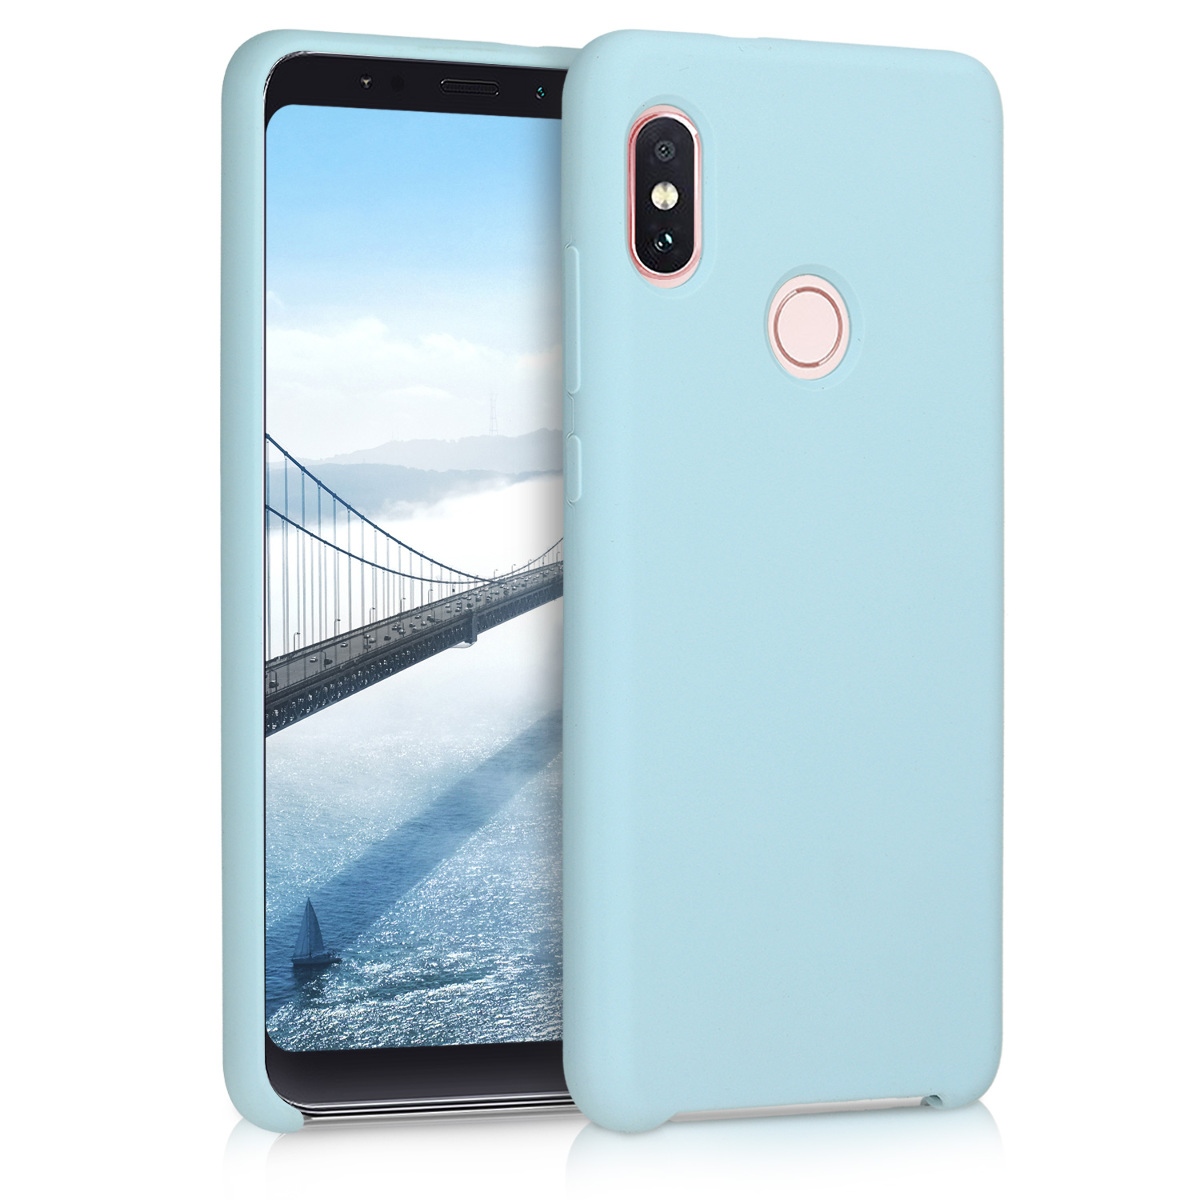 KW Θήκη Σιλικόνης Xiaomi Redmi Note 5 (Global Version) / Note 5 Pro - Soft Flexible Rubber Protective Cover - Light Blue Matte - (46380.58)